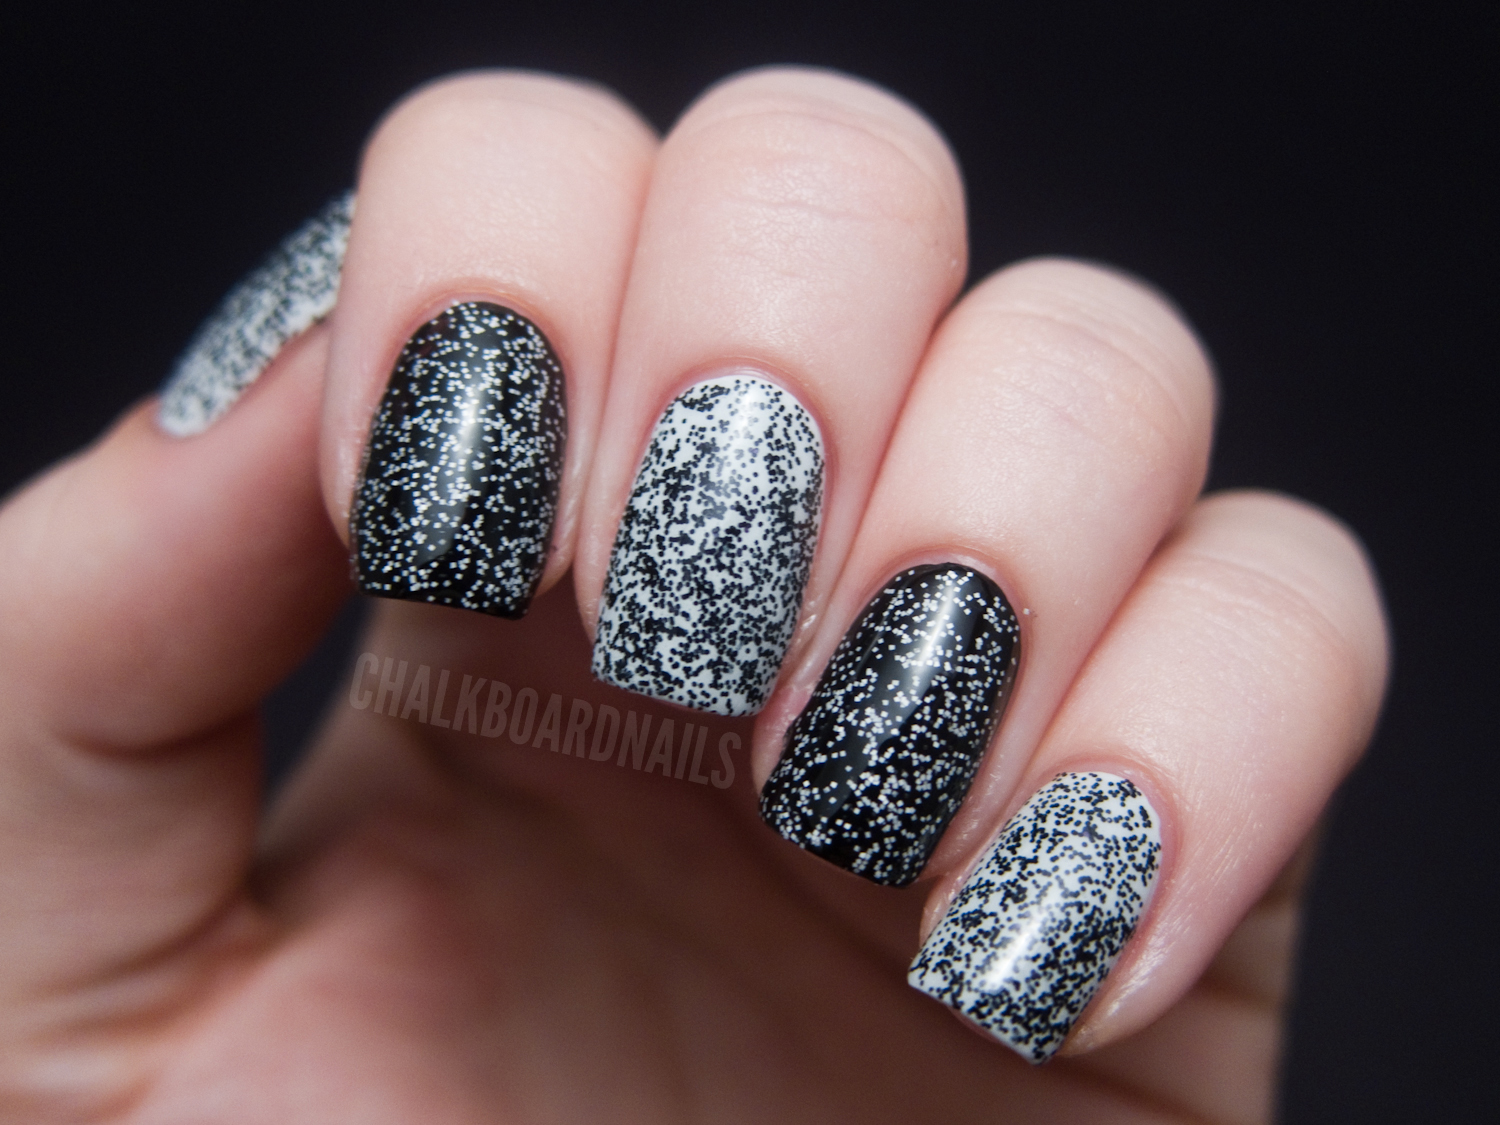 The Tiny Microglitter In Windestine Polishes Makes My Nails Look Like Tv Static